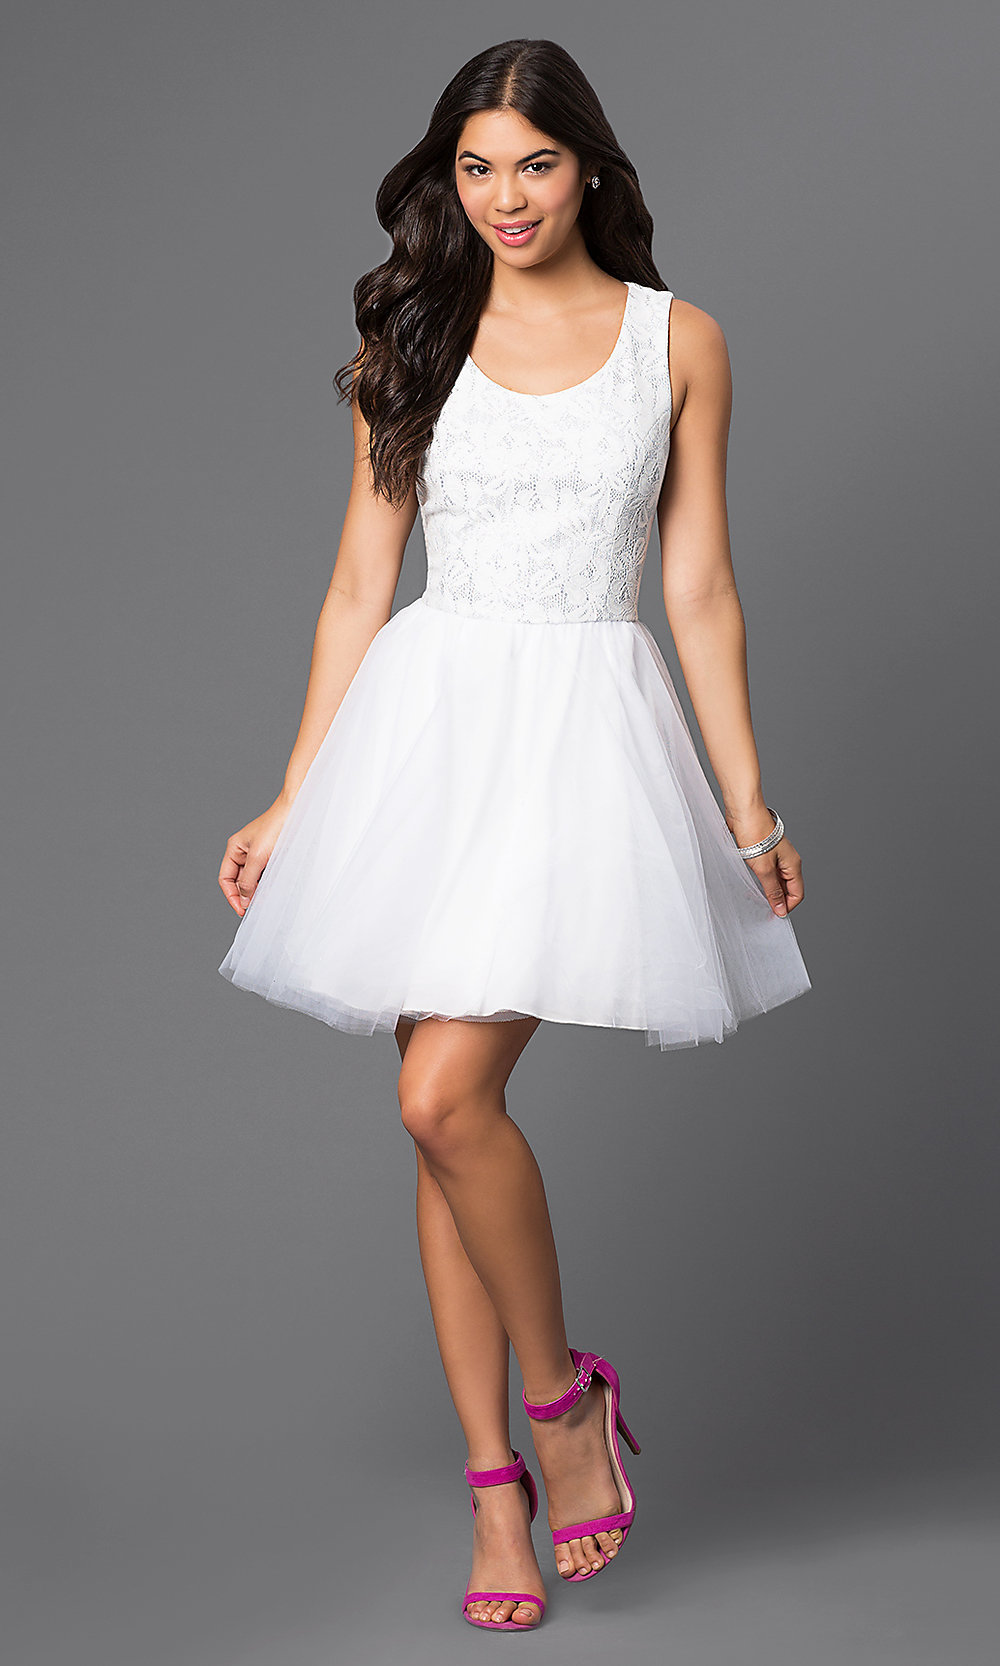 Party Dresses. Styles Found. Team your party dress with a simple clutch, strappy heels and a rhinestone choker for an effortlessly chic appeal. It's time to bring a little bit of sass to your closet, so get shopping and take home your brand new party dress today. White Strappy Lace Tassel Mix Fringe Mini Dress $